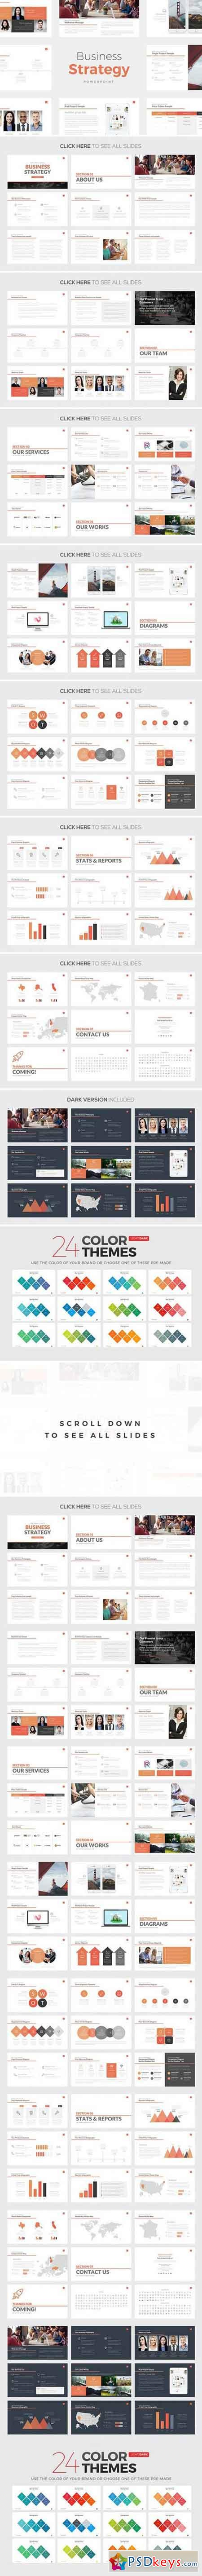 Business Strategy Deck PowerPoint 792481